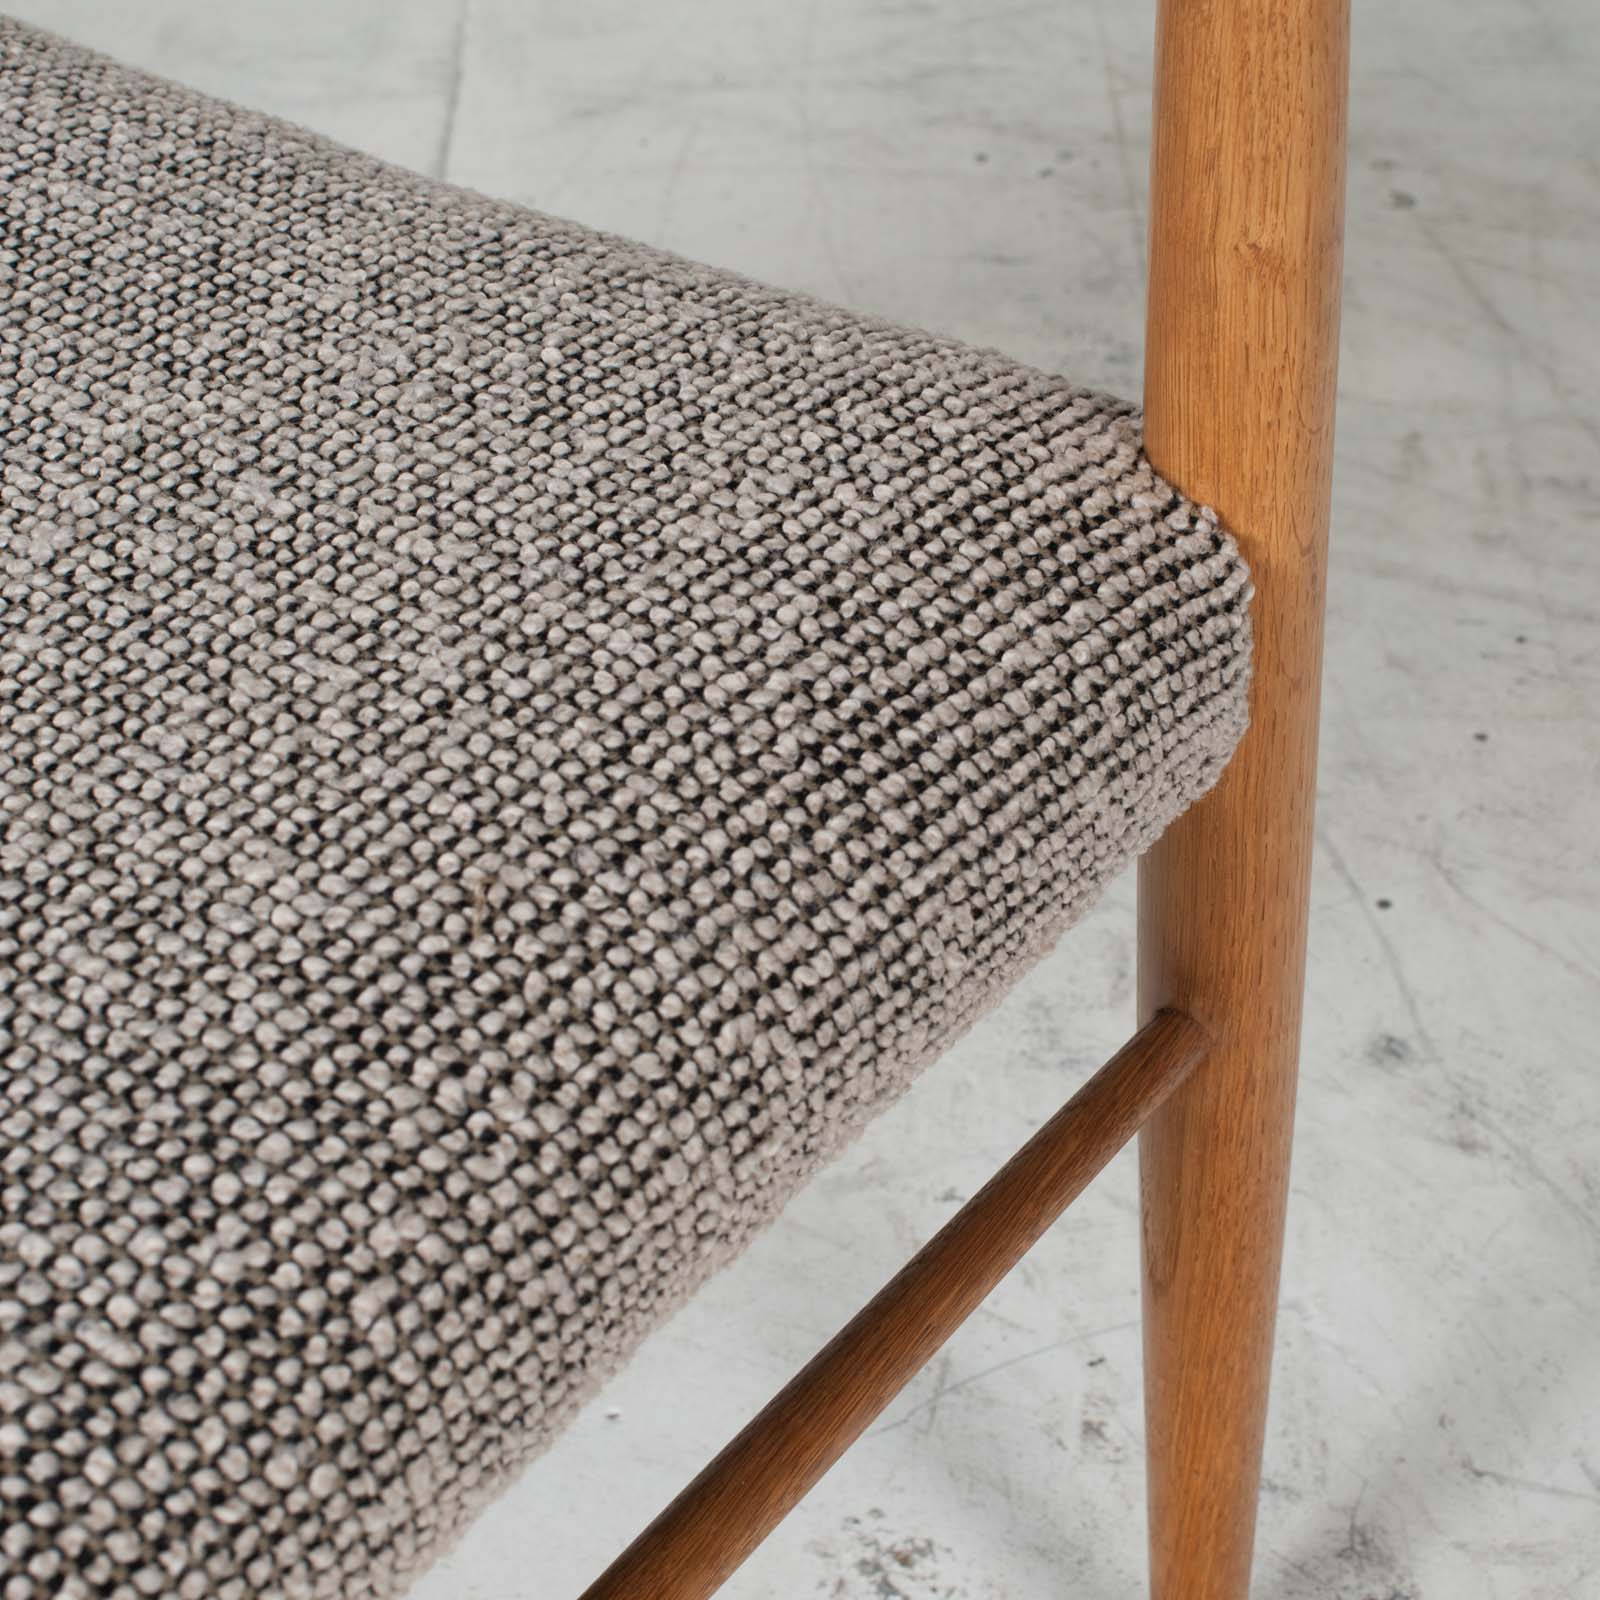 Set 6 Dining Chairs By H.w.klein In Oak And Textured Grey Wool 1960s Denmark 09